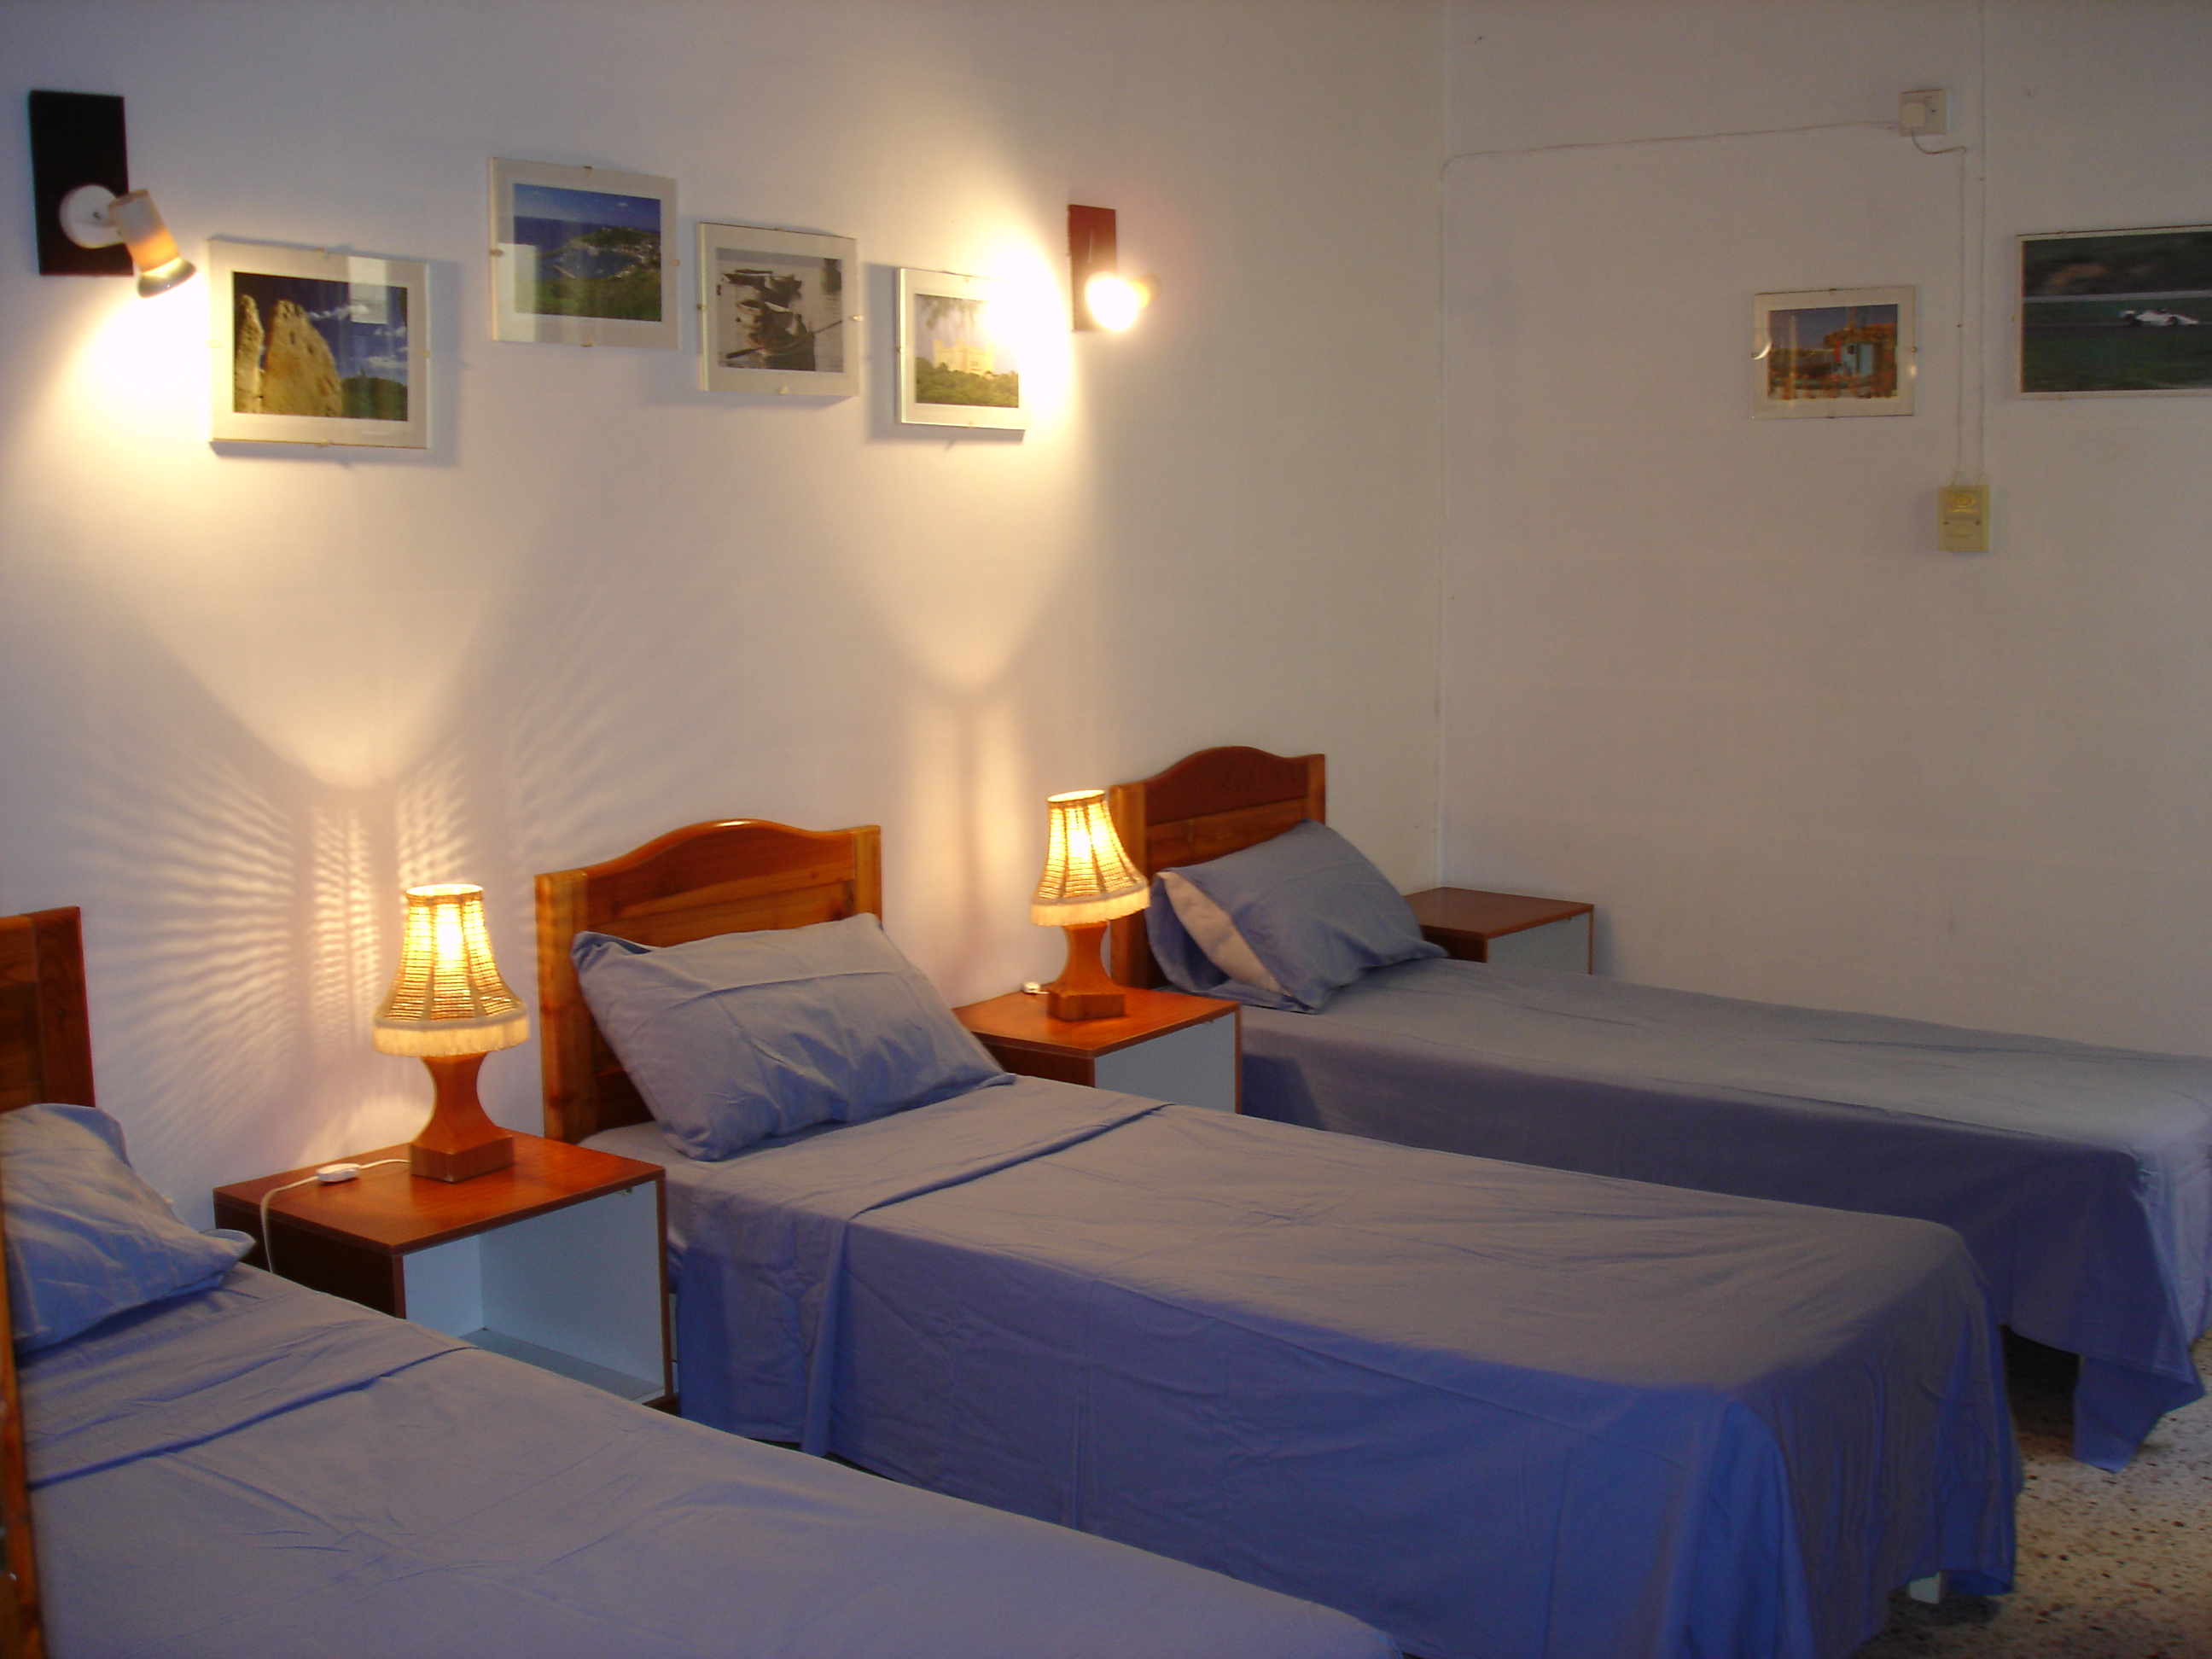 xlendi tourist services Gozo Apartments Tripple Room 2 ...